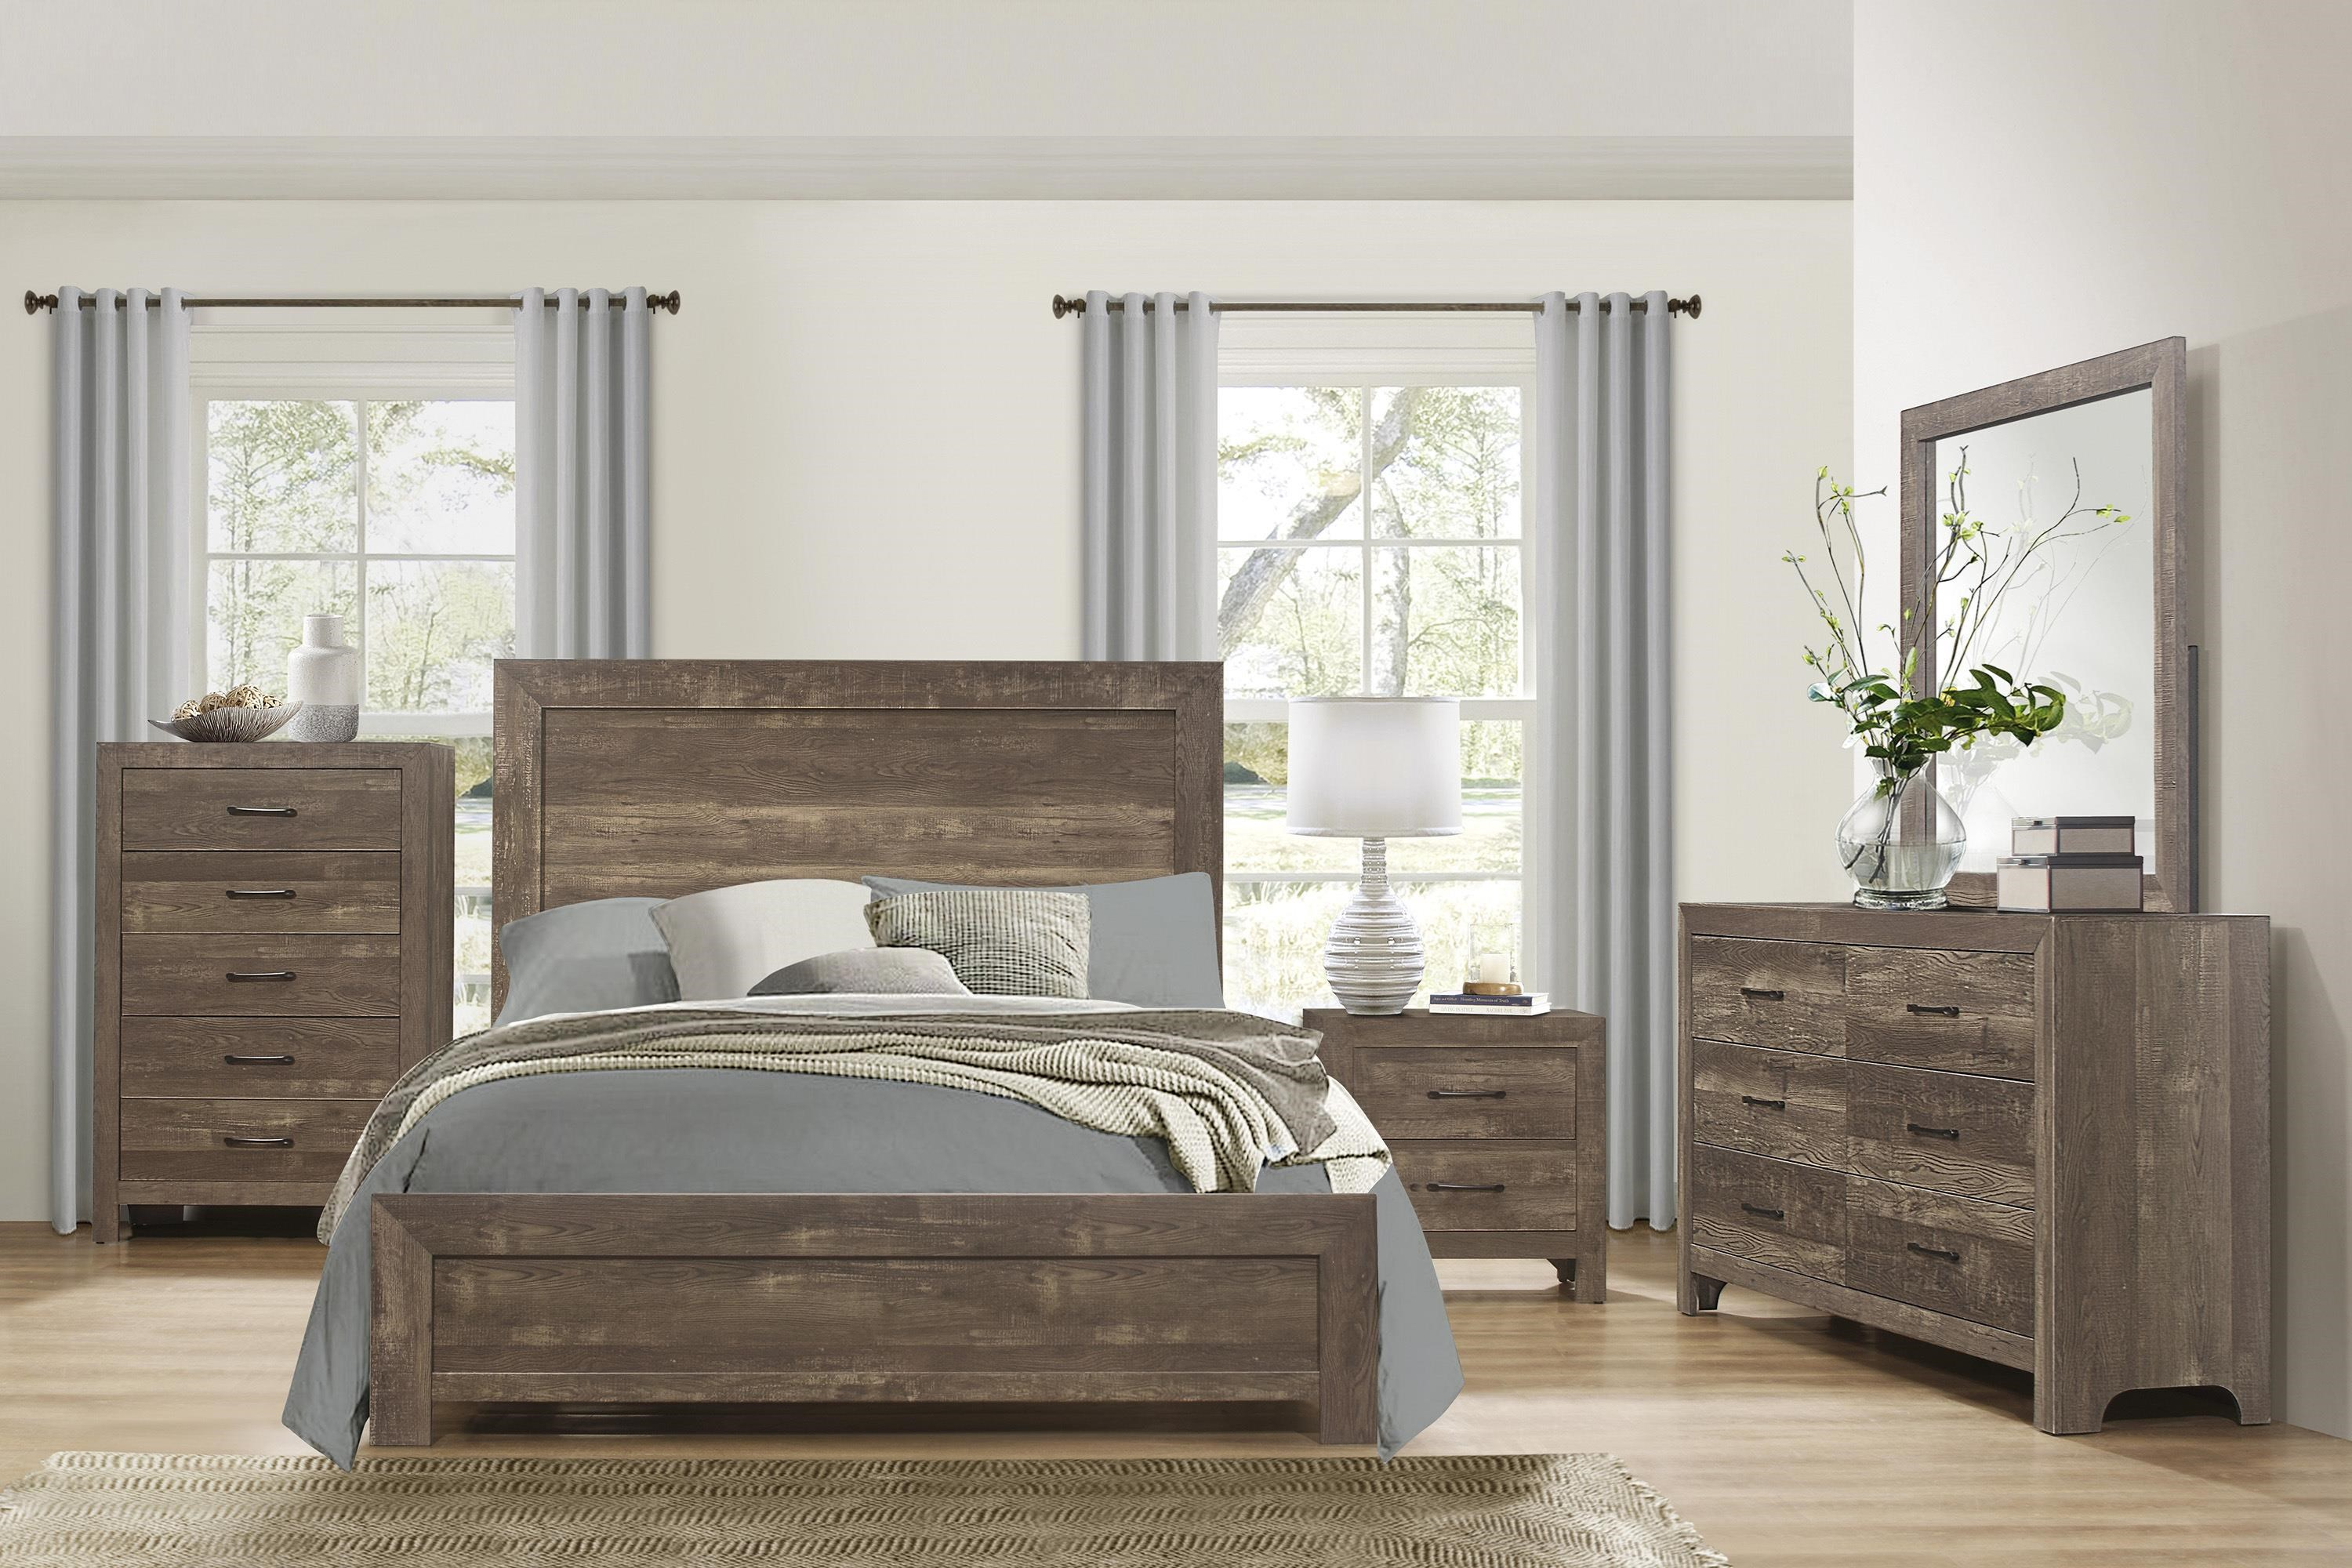 Corbin Queen Bedroom Group by Homelegance at Beck's Furniture